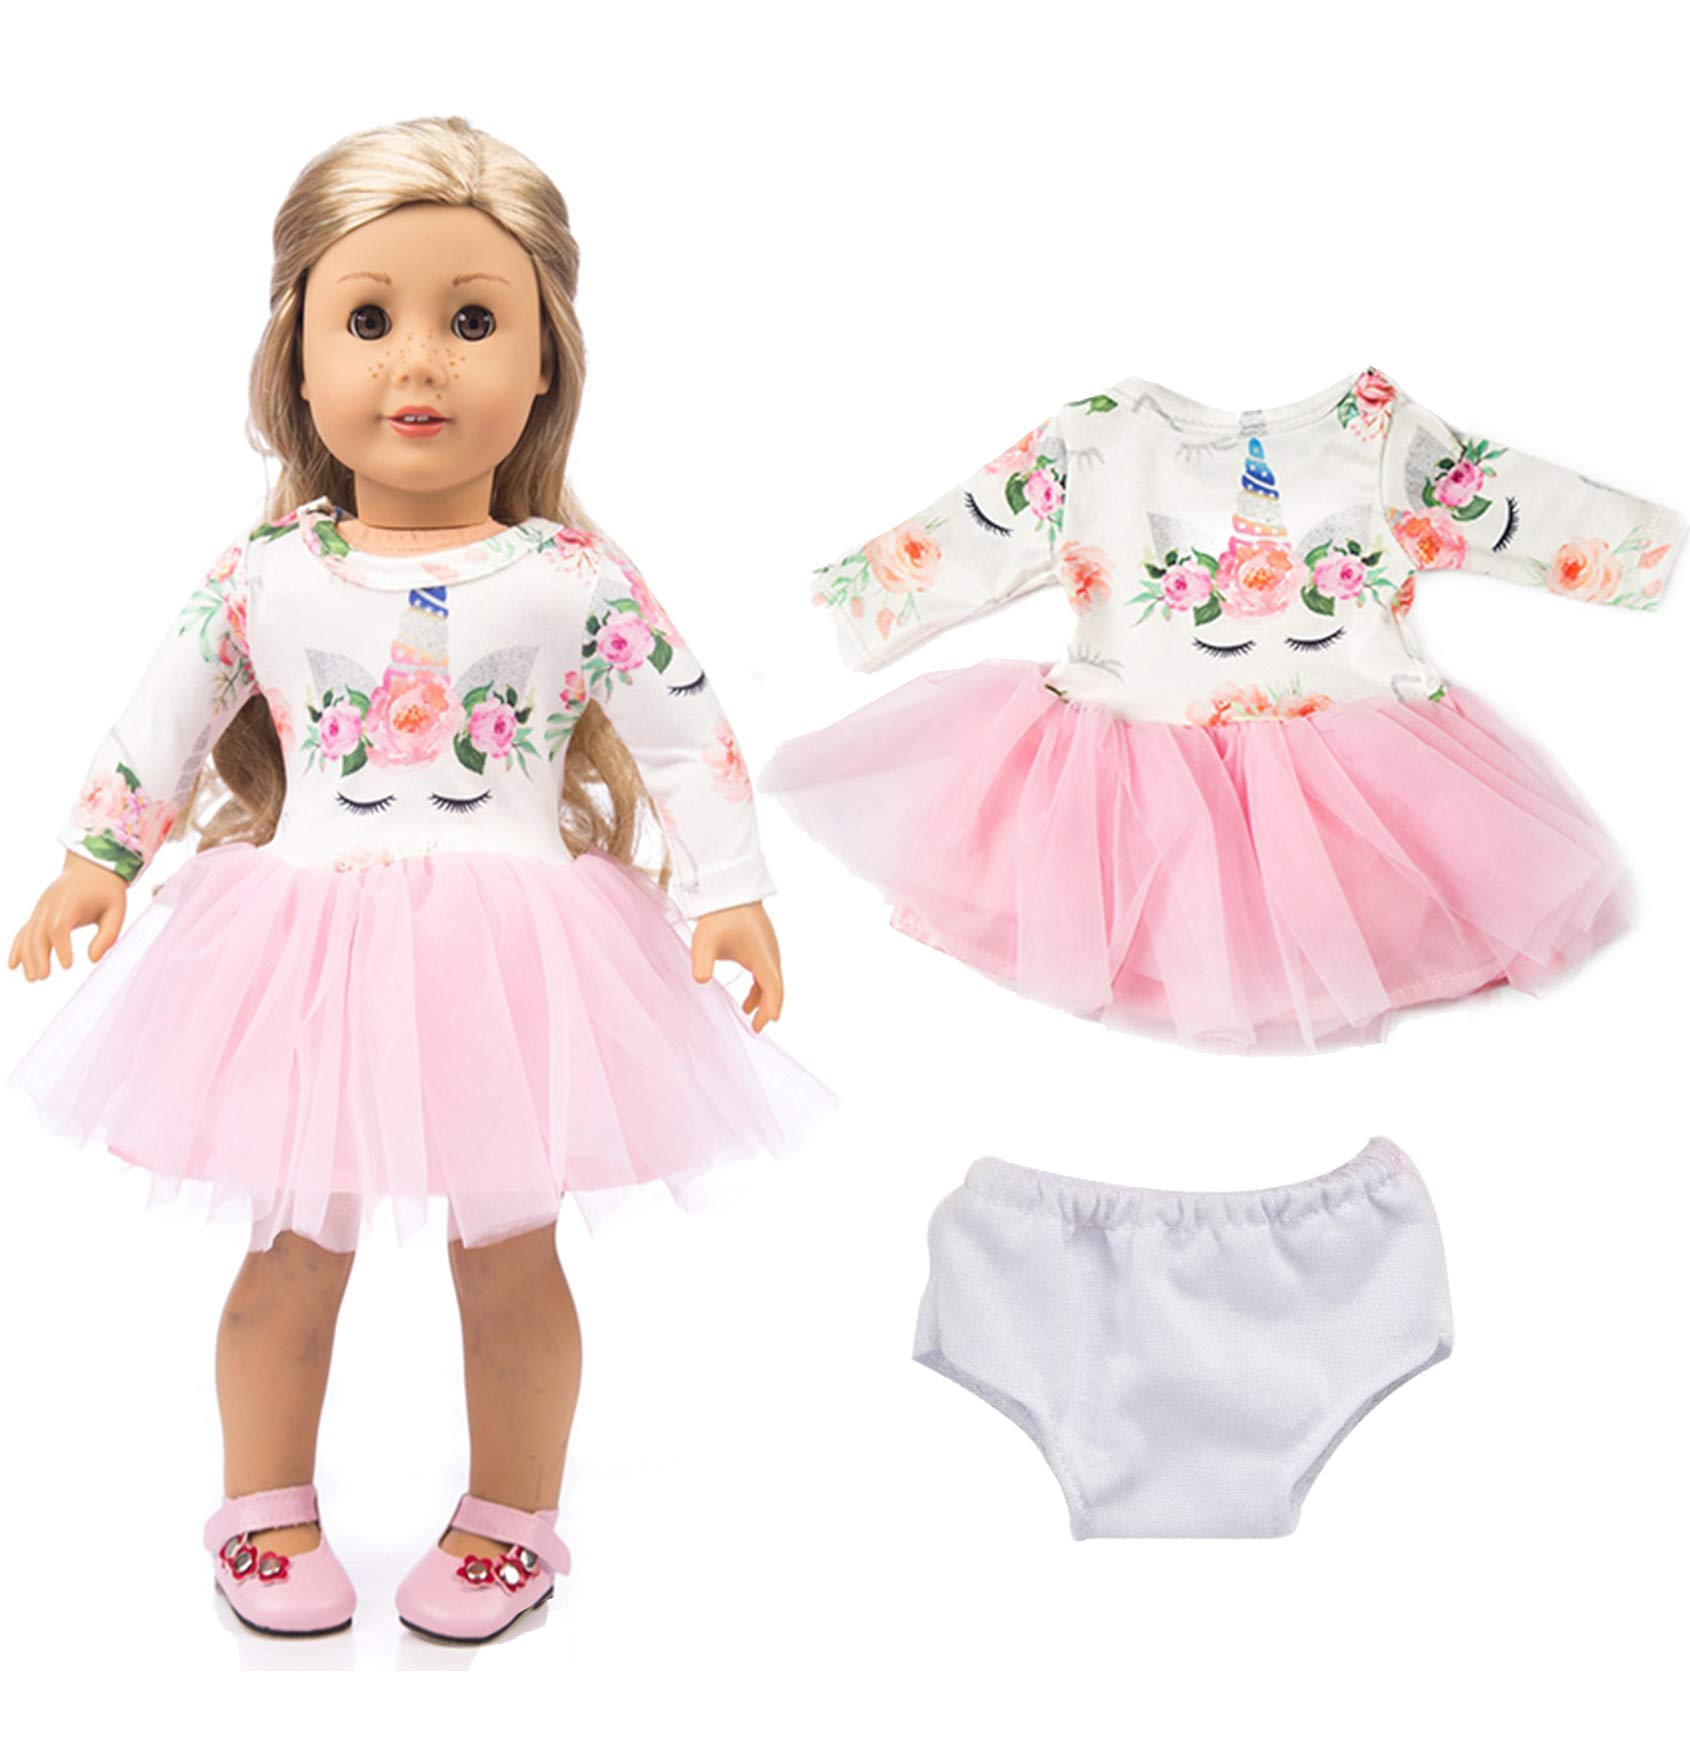 ebuddy Pink Long Sleeve Veil Soft Cotton Unicorn Doll Dress Clothes with Underwear for 18 inch American Girl, Journey Girl Dolls, Our Generation Dolls